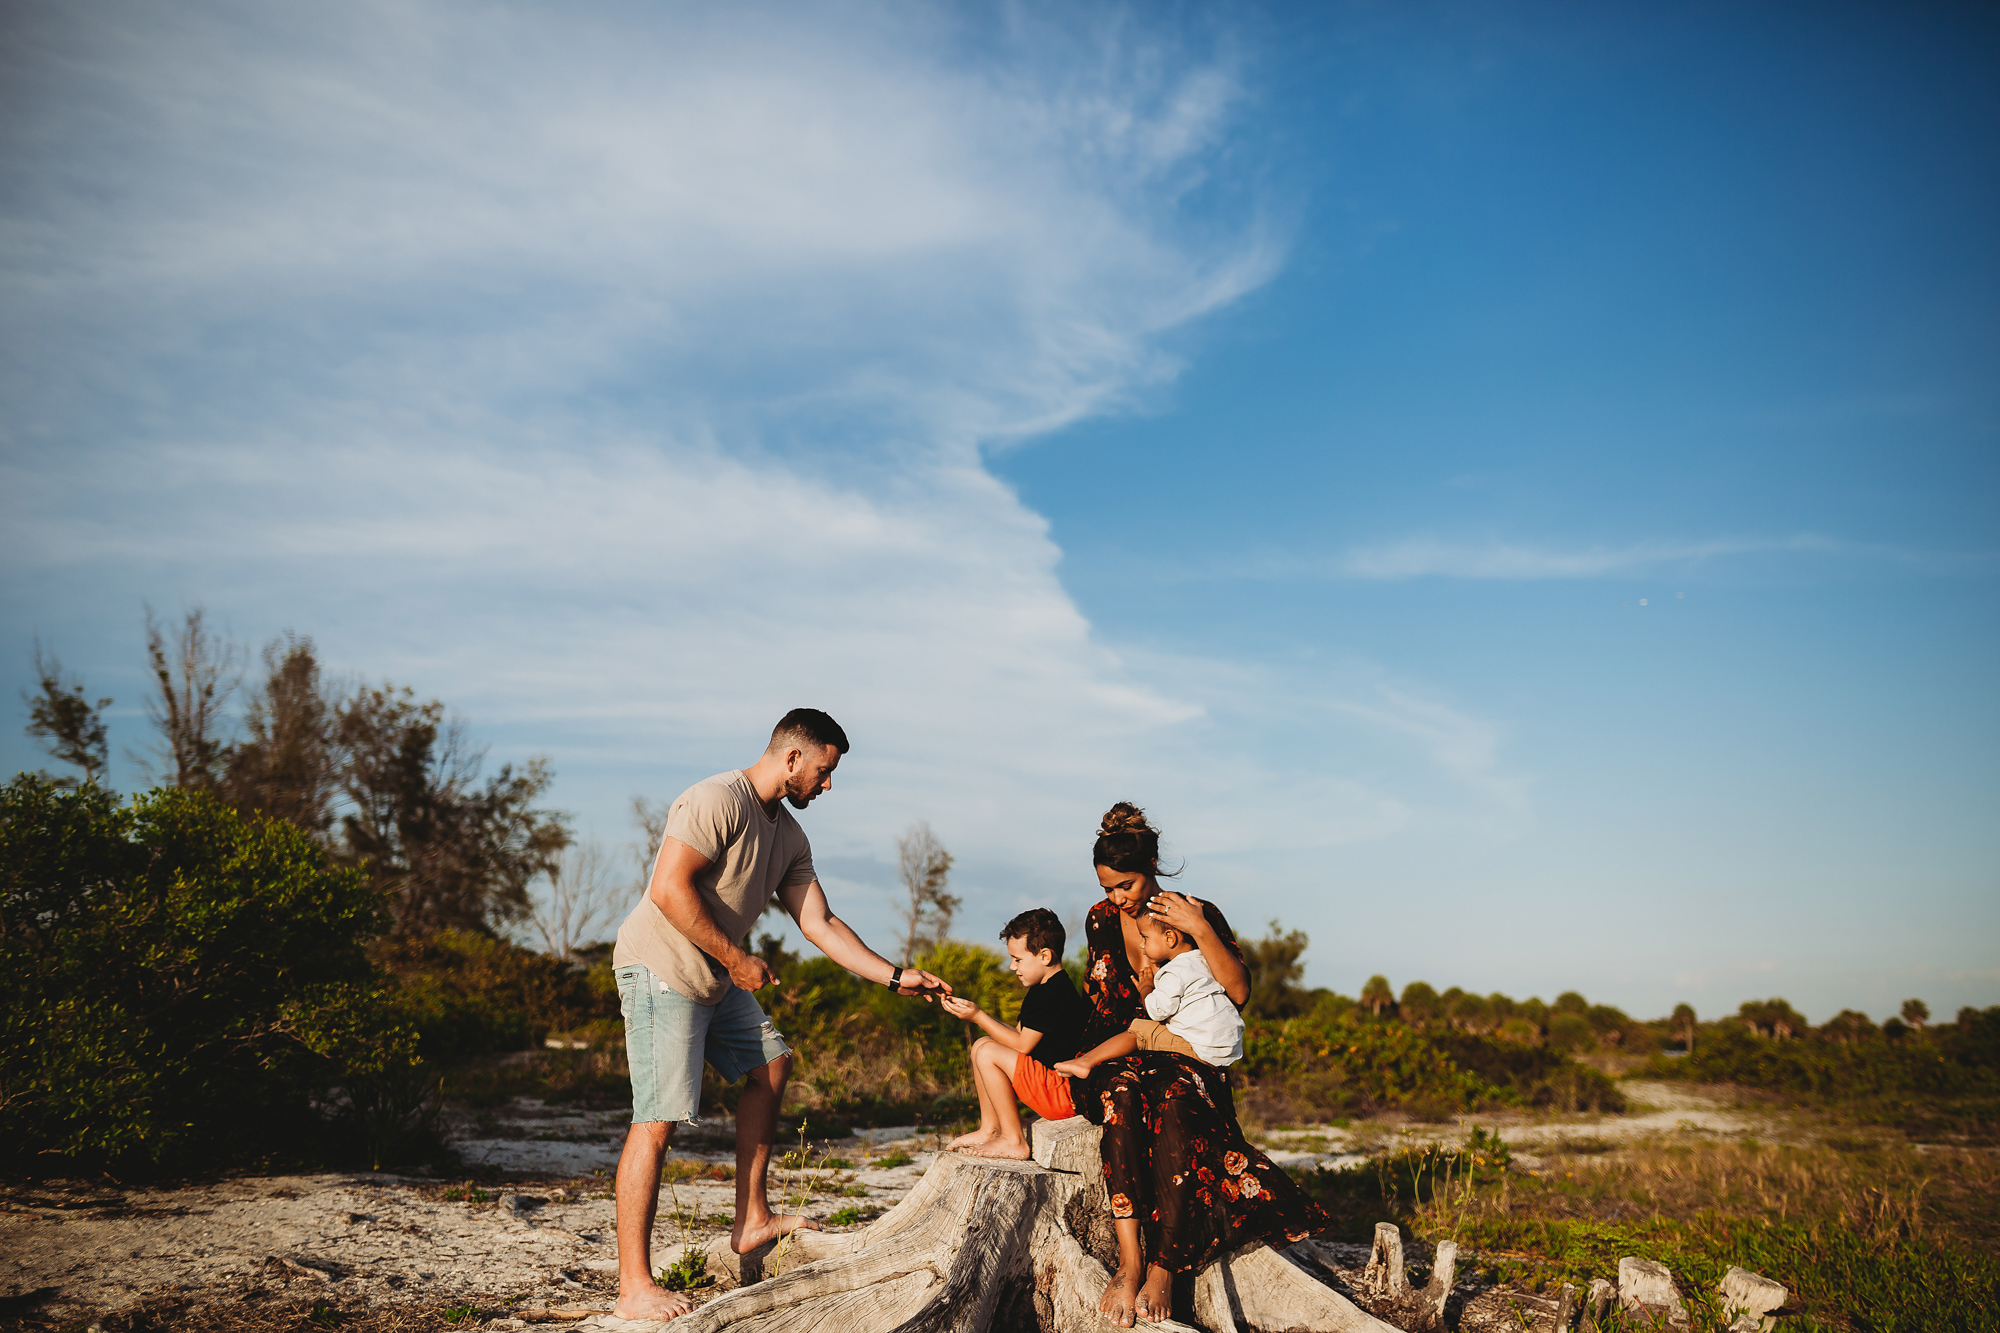 professional family photography, tampa bay fl